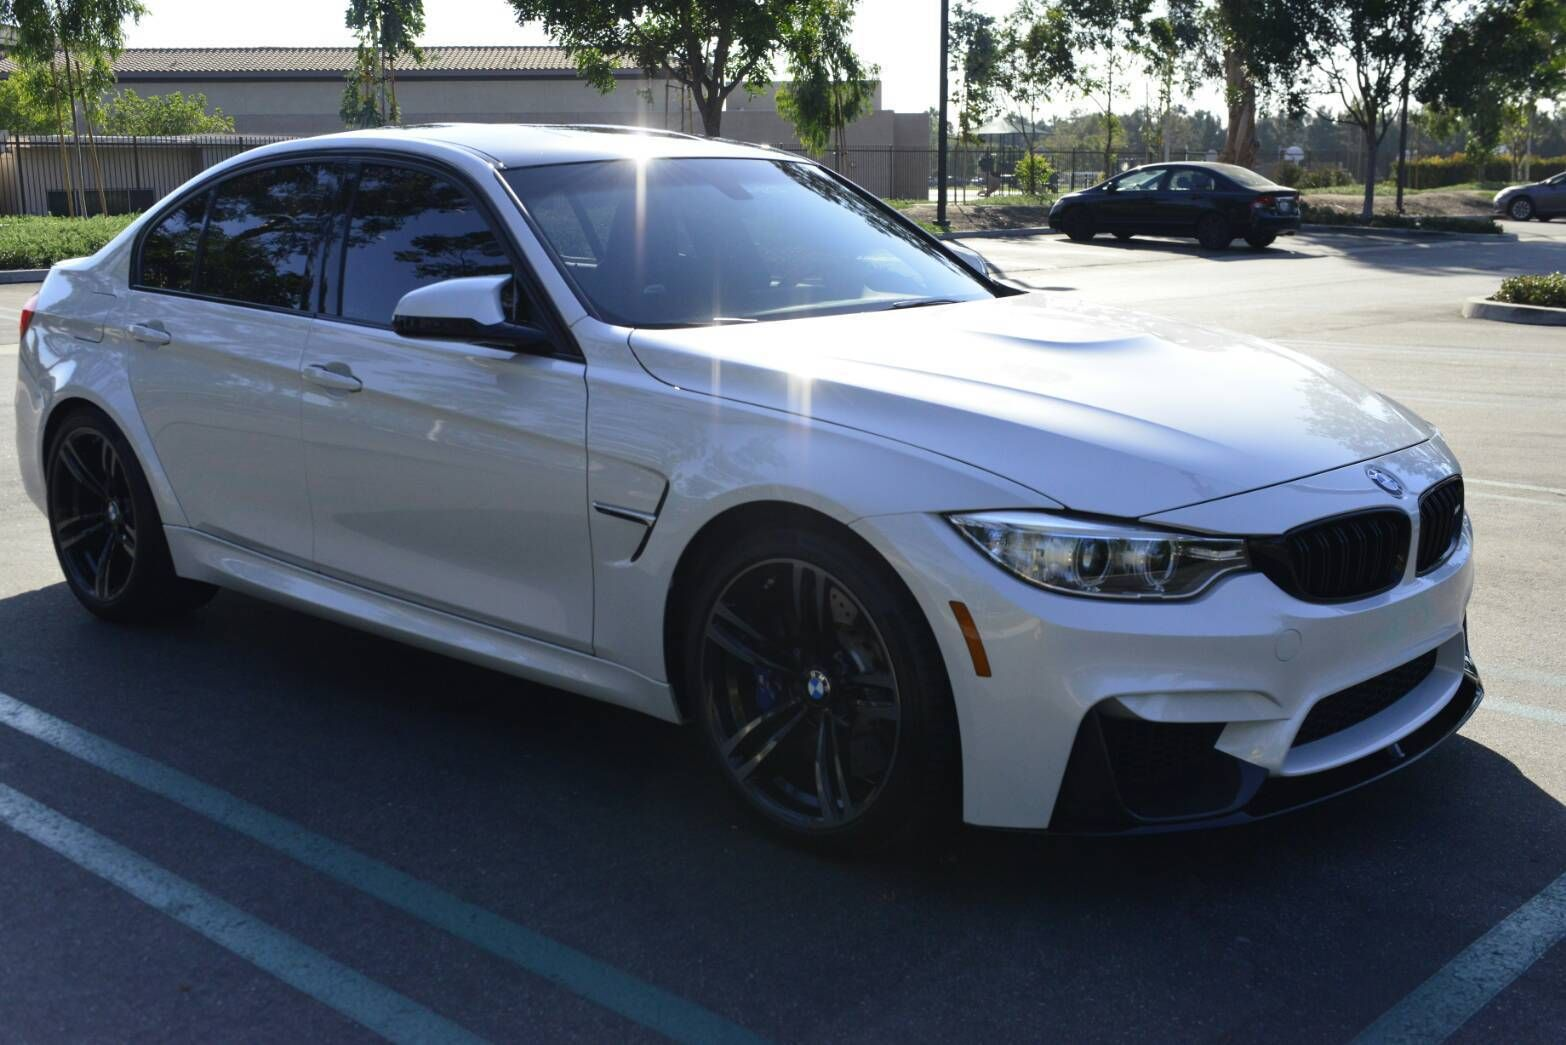 Cool Awesome 2016 BMW M3 Sedan 4 Door Excellent Condition Mineral White  2016 BMW M3